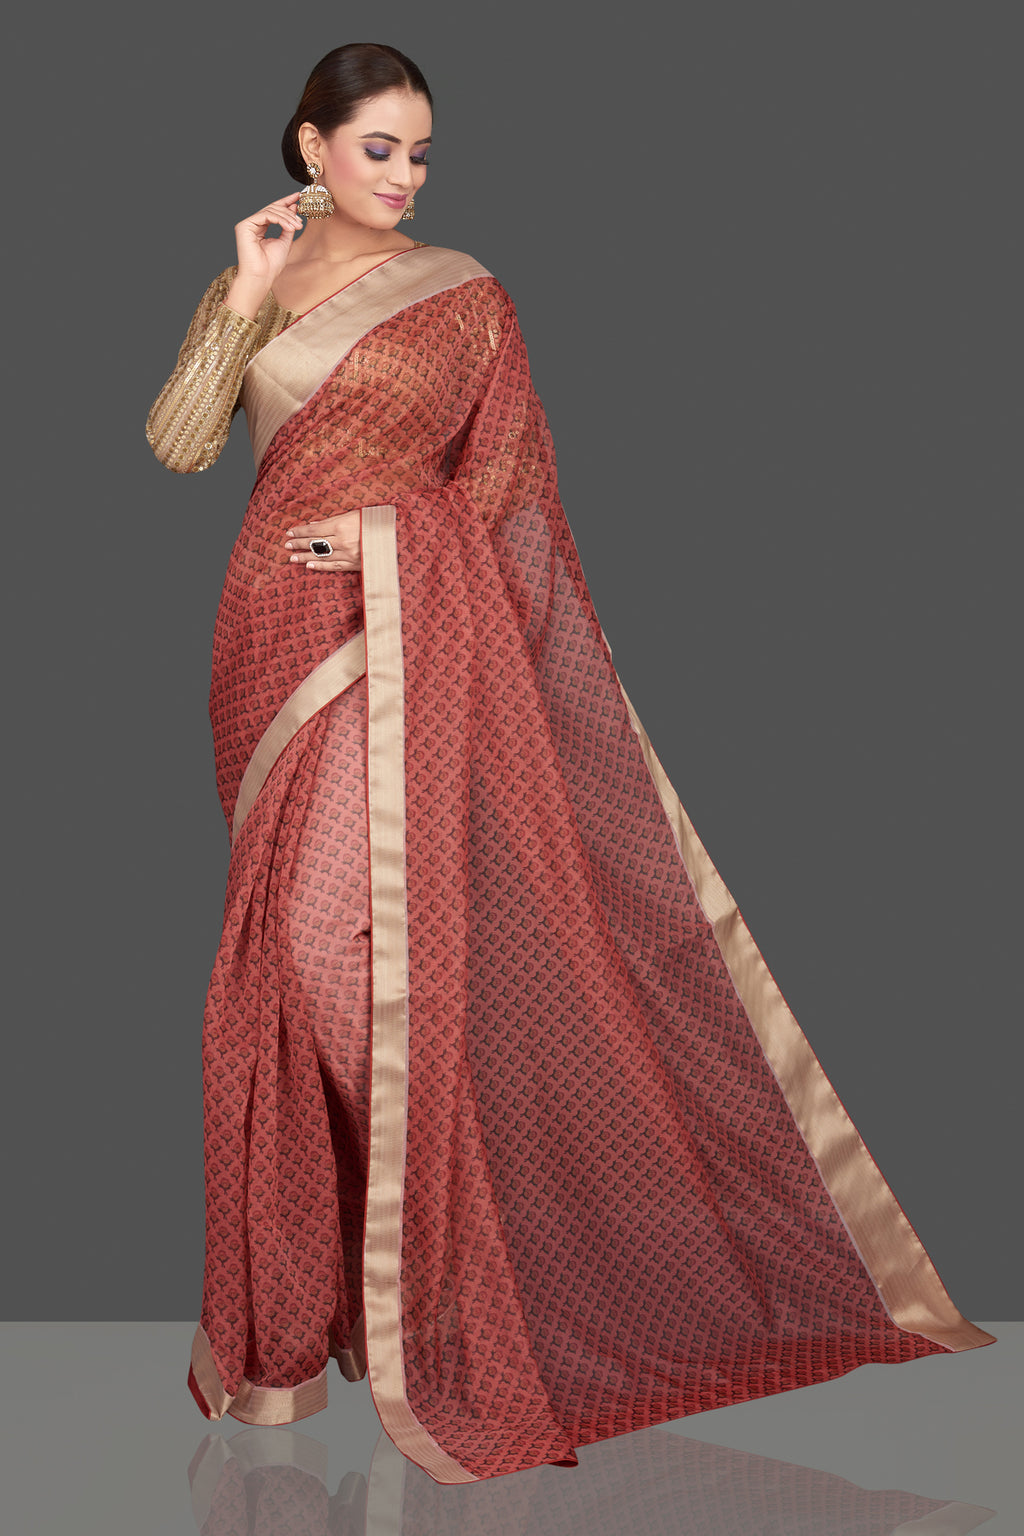 Buy red printed organza sari online in USA with golden sari blouse. Look glamorous at parties and weddings in stunning designer sarees, embroidered sareees, fancy sarees, Bollywood sarees from Pure Elegance Indian saree store in USA.-full view